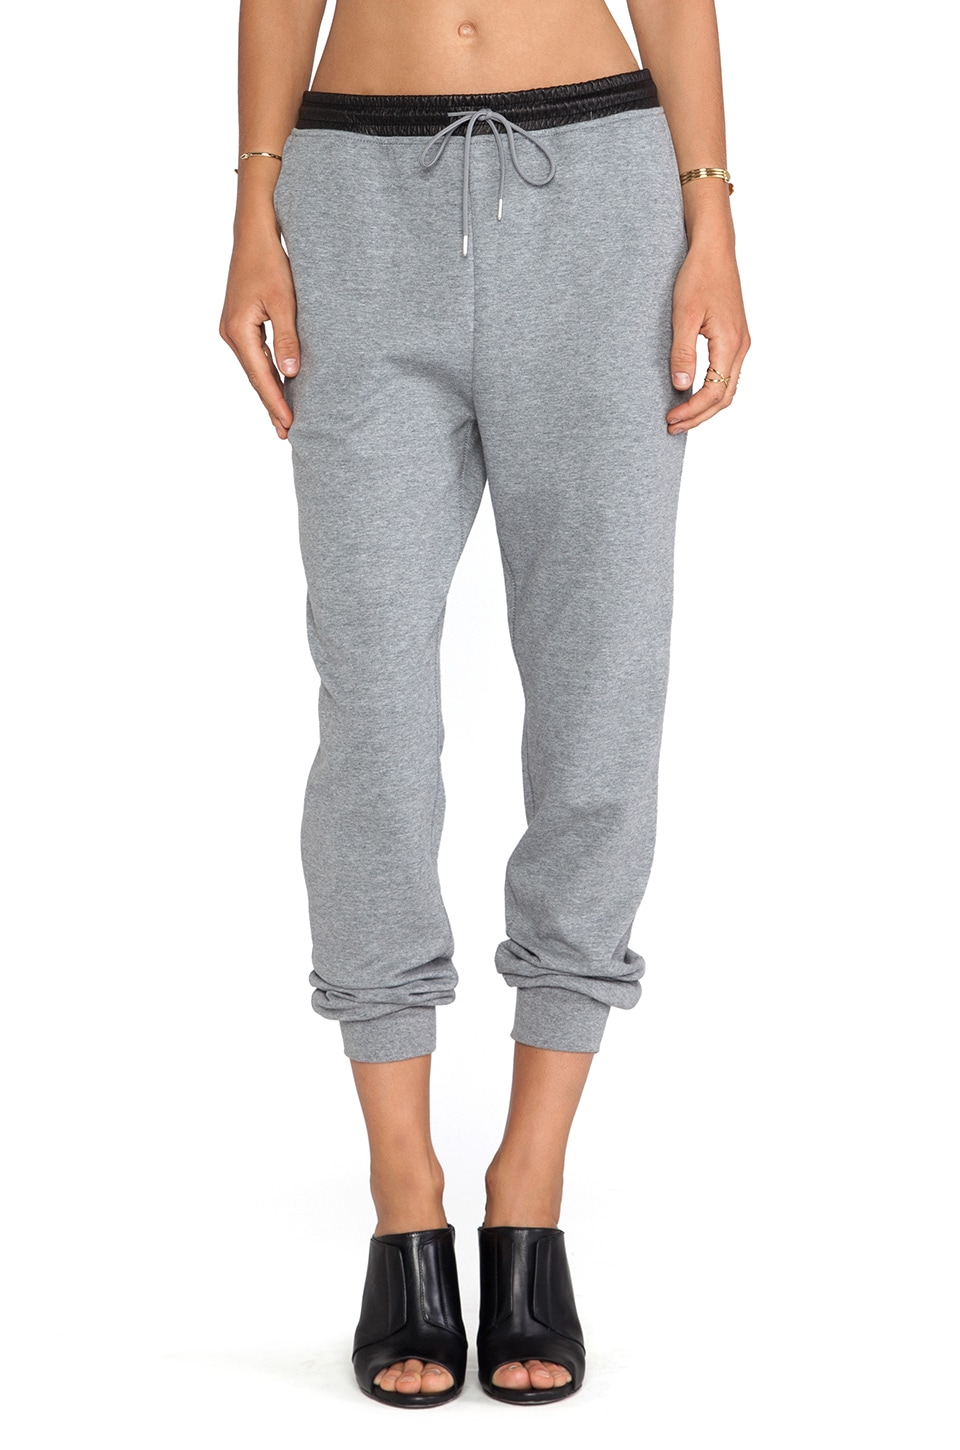 T by Alexander Wang Leather Waistband Sweatpants in Heather Grey